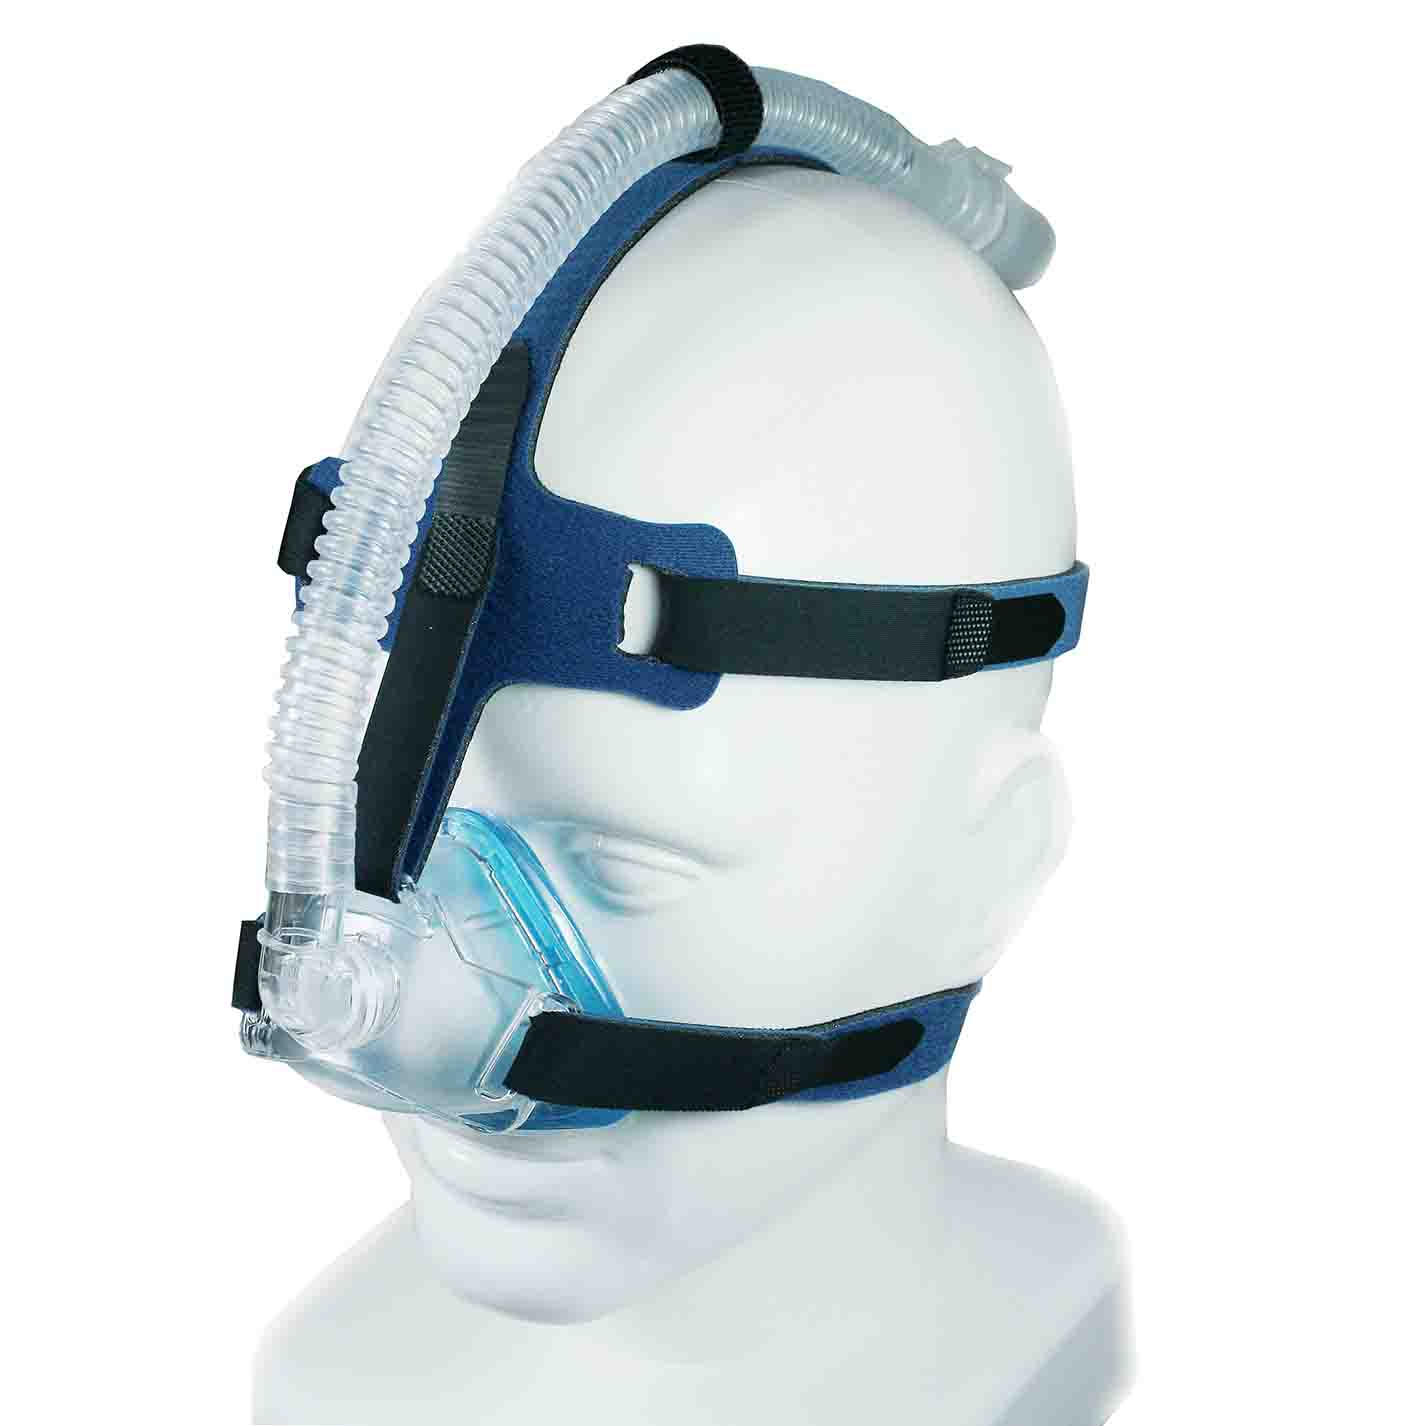 Sleepnet iQ Blue Nasal Mask